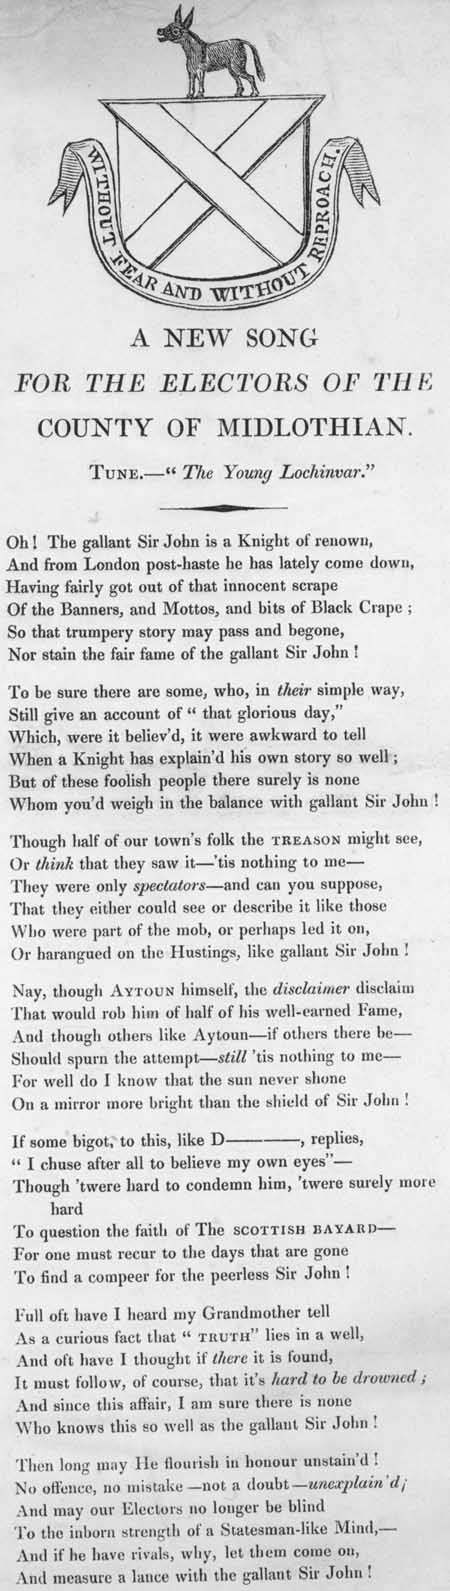 Broadside ballad entitled 'A New Song for the Electors of the County of Midlothian'